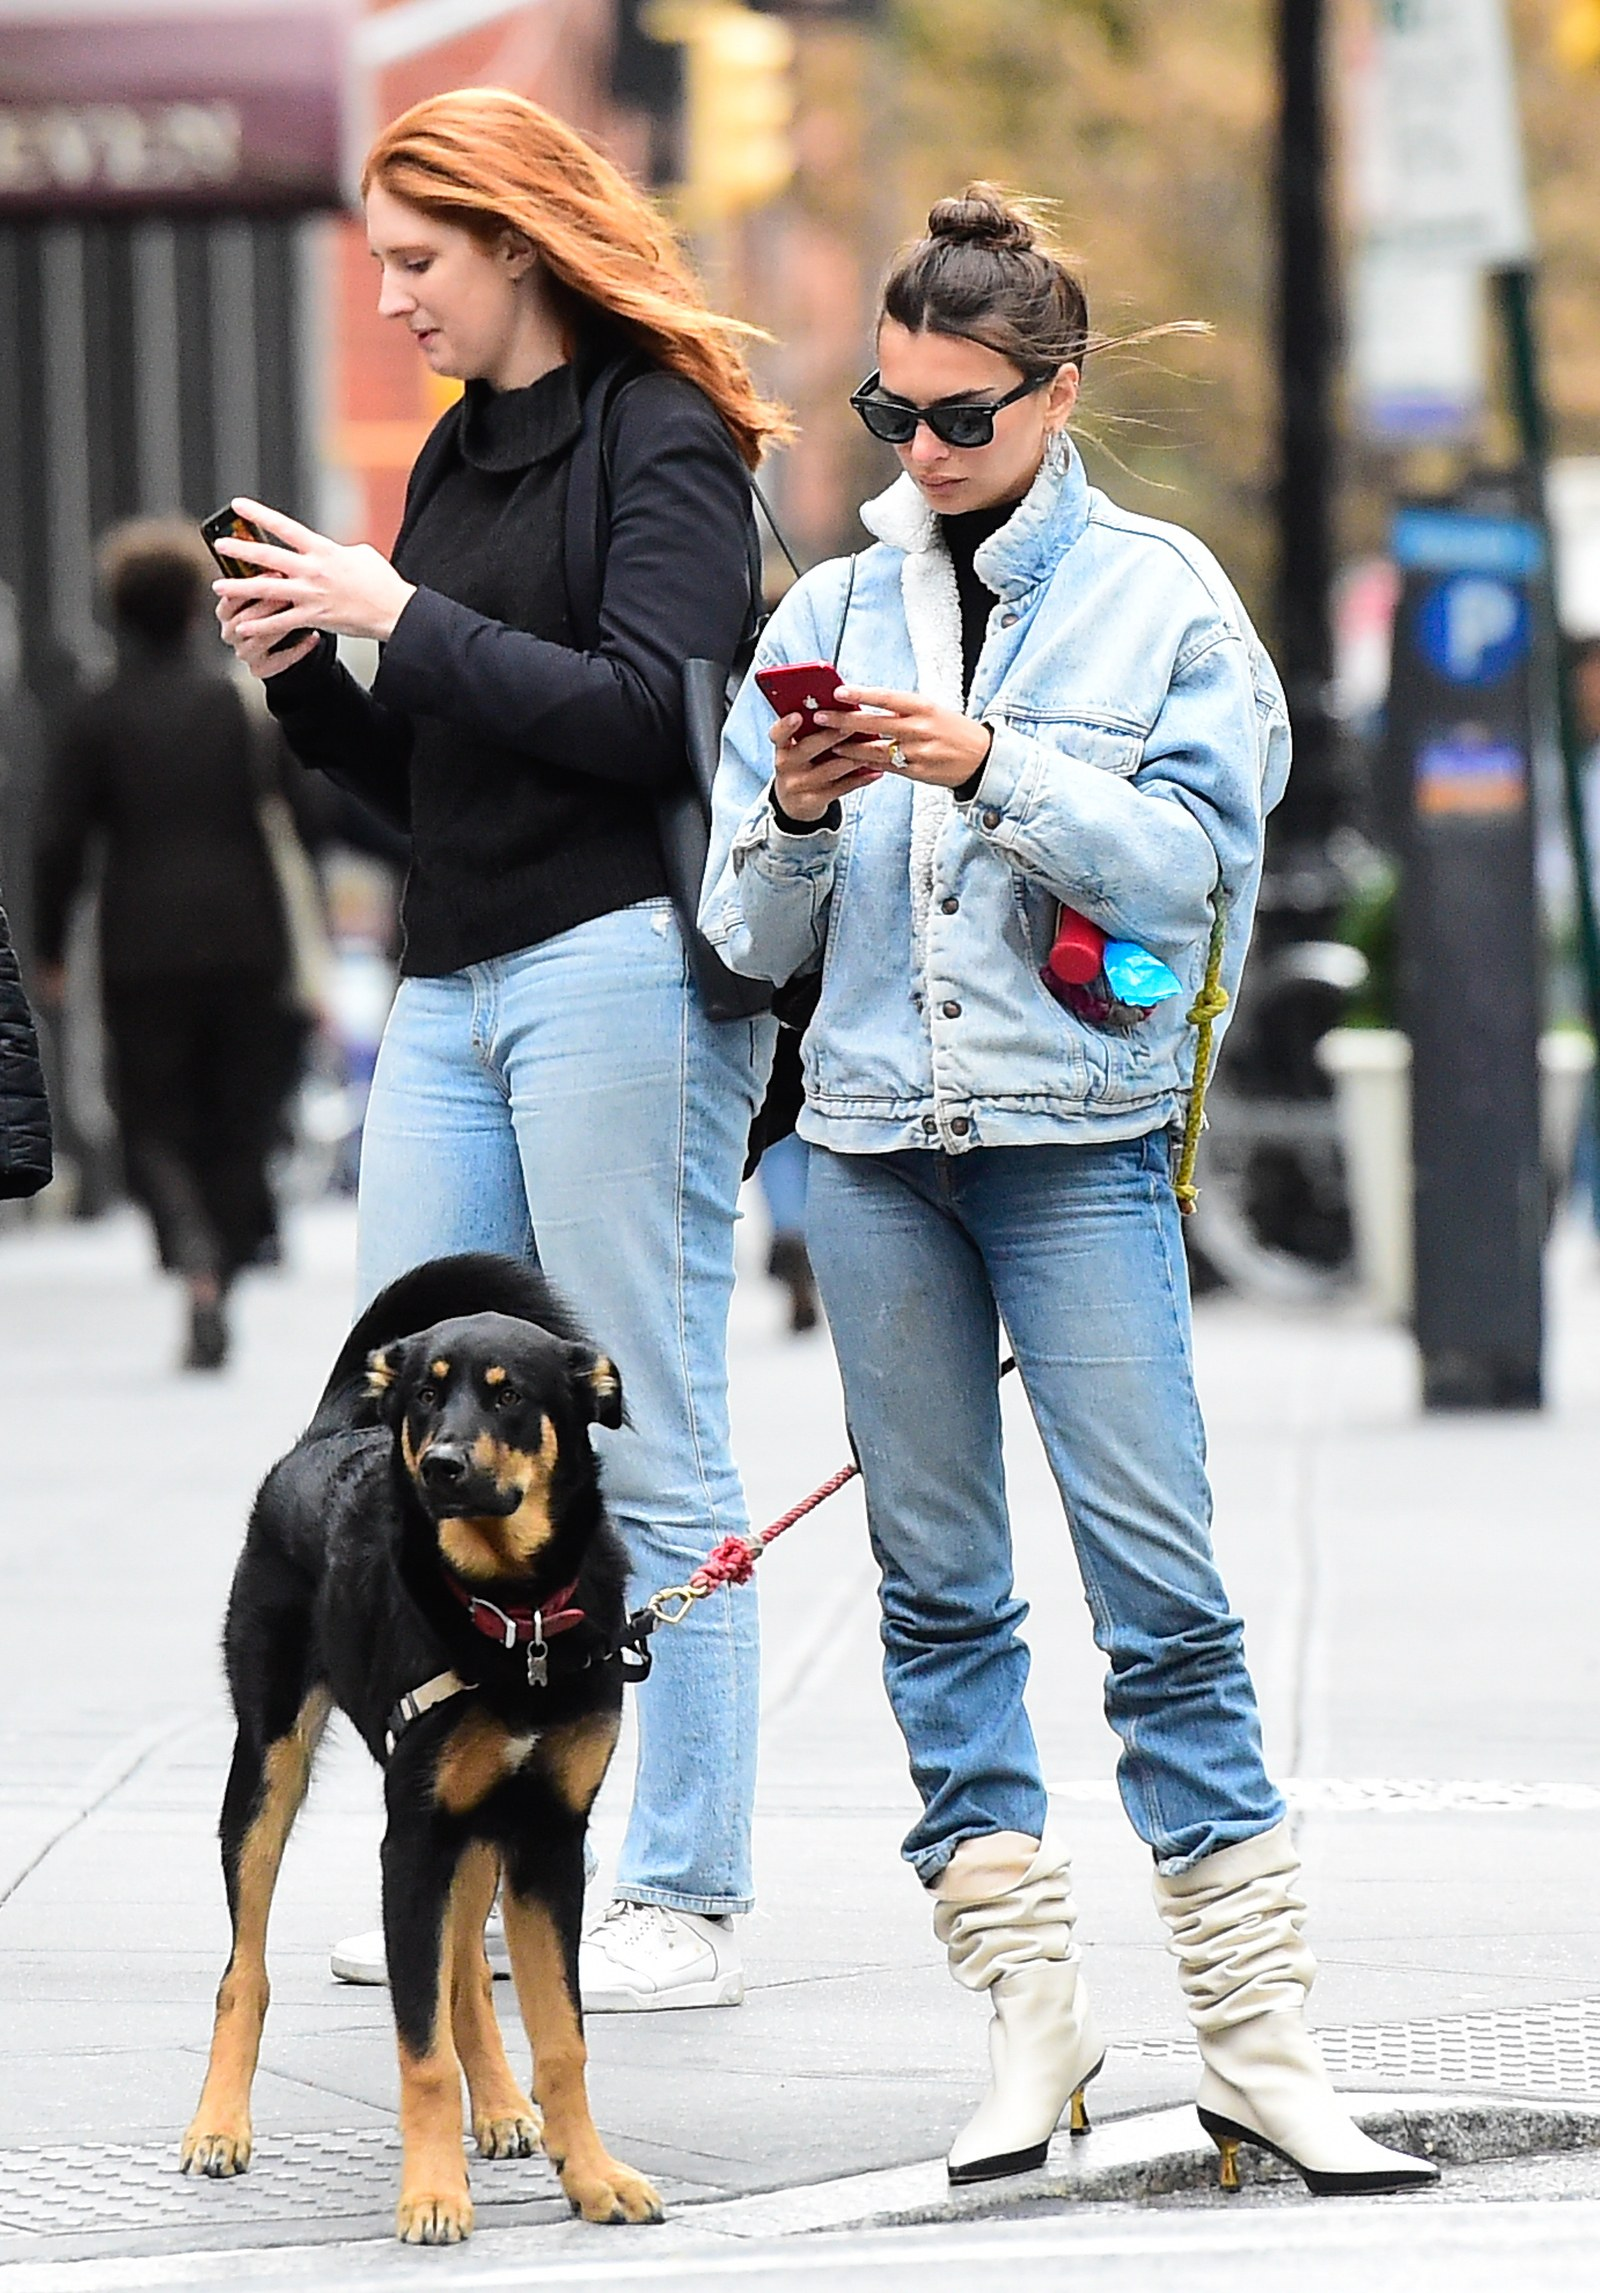 How to wear booties Emily Ratajkowski wears jeans and slouchy booties in New York City